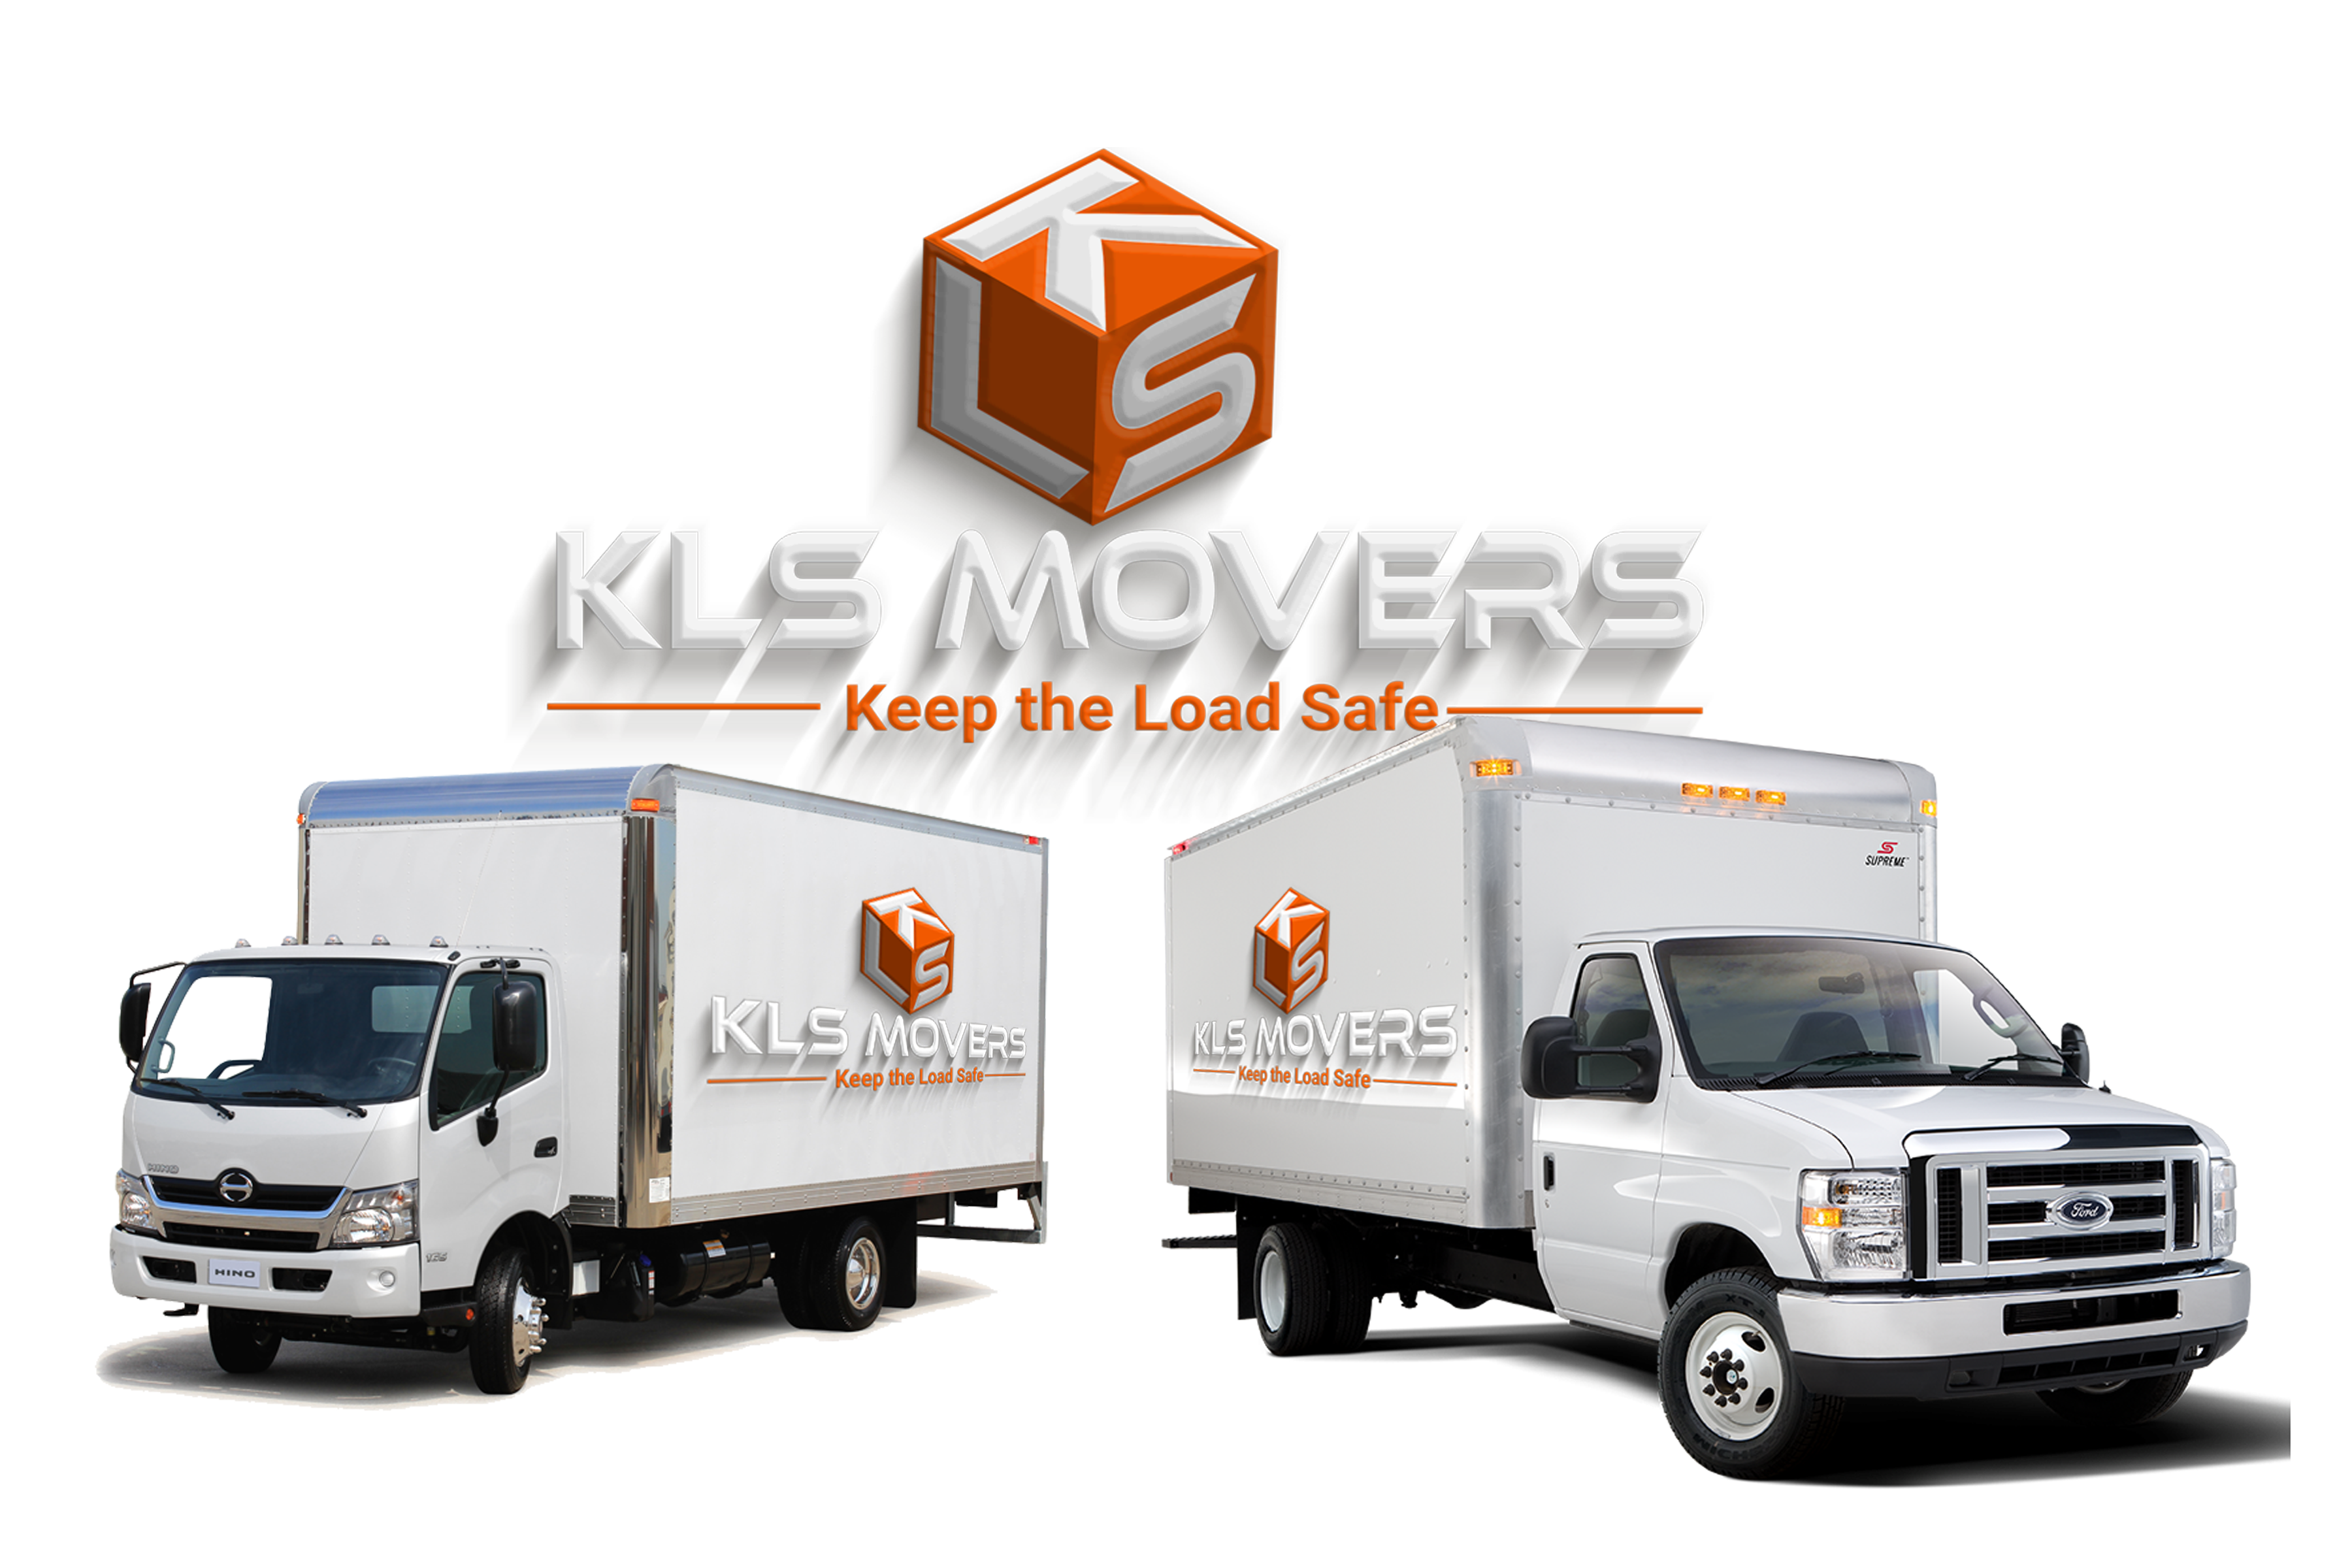 Pin On Kls Movers